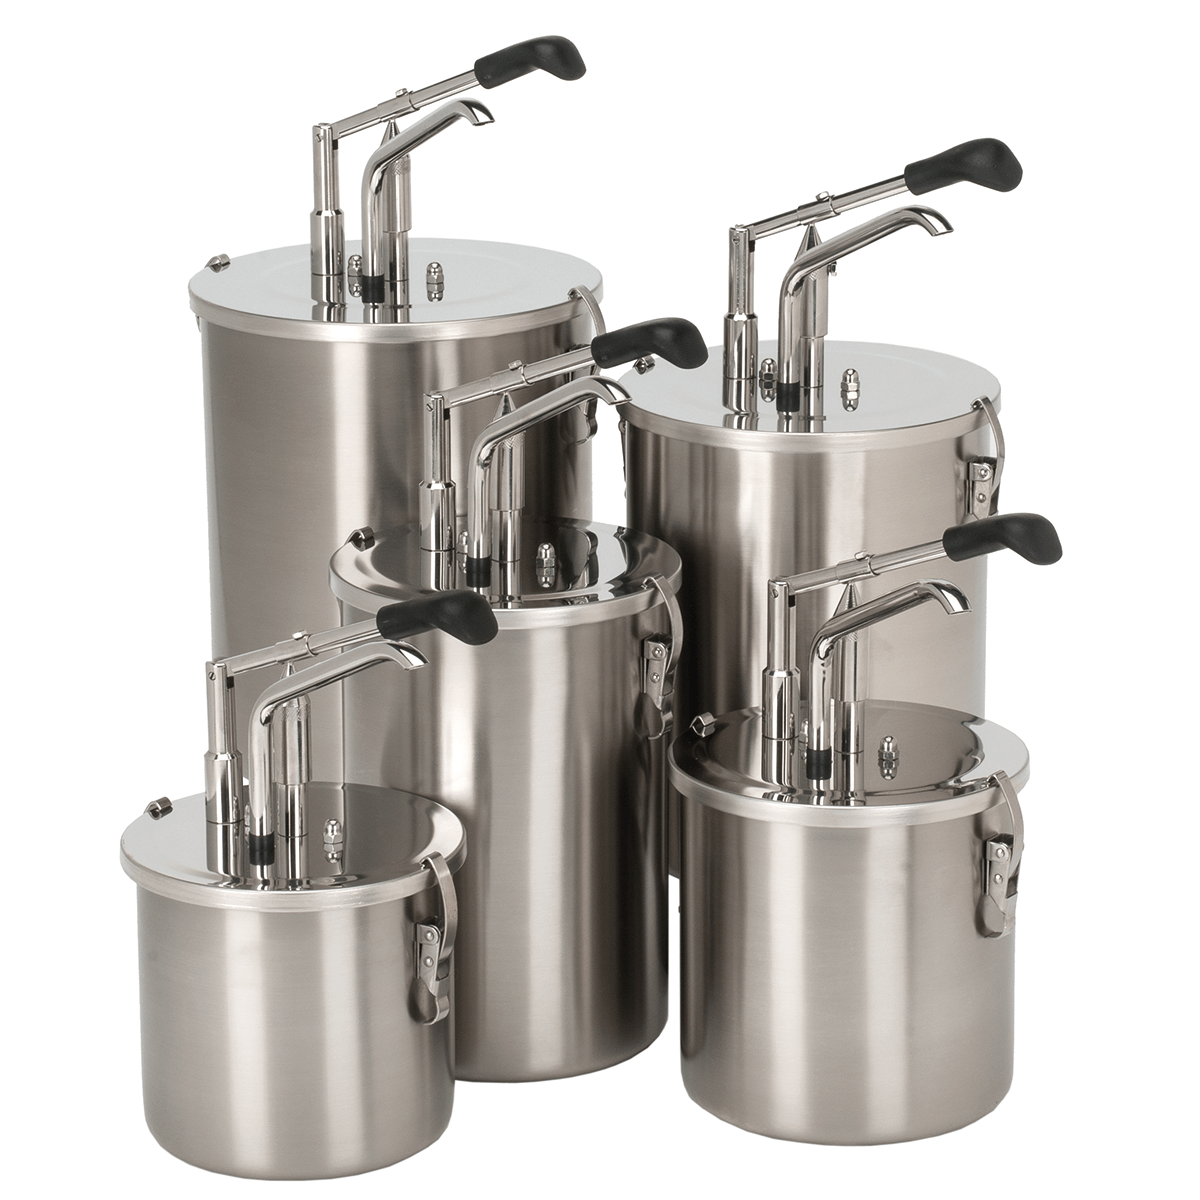 Lever-action Dispenser Stainless Steel Container